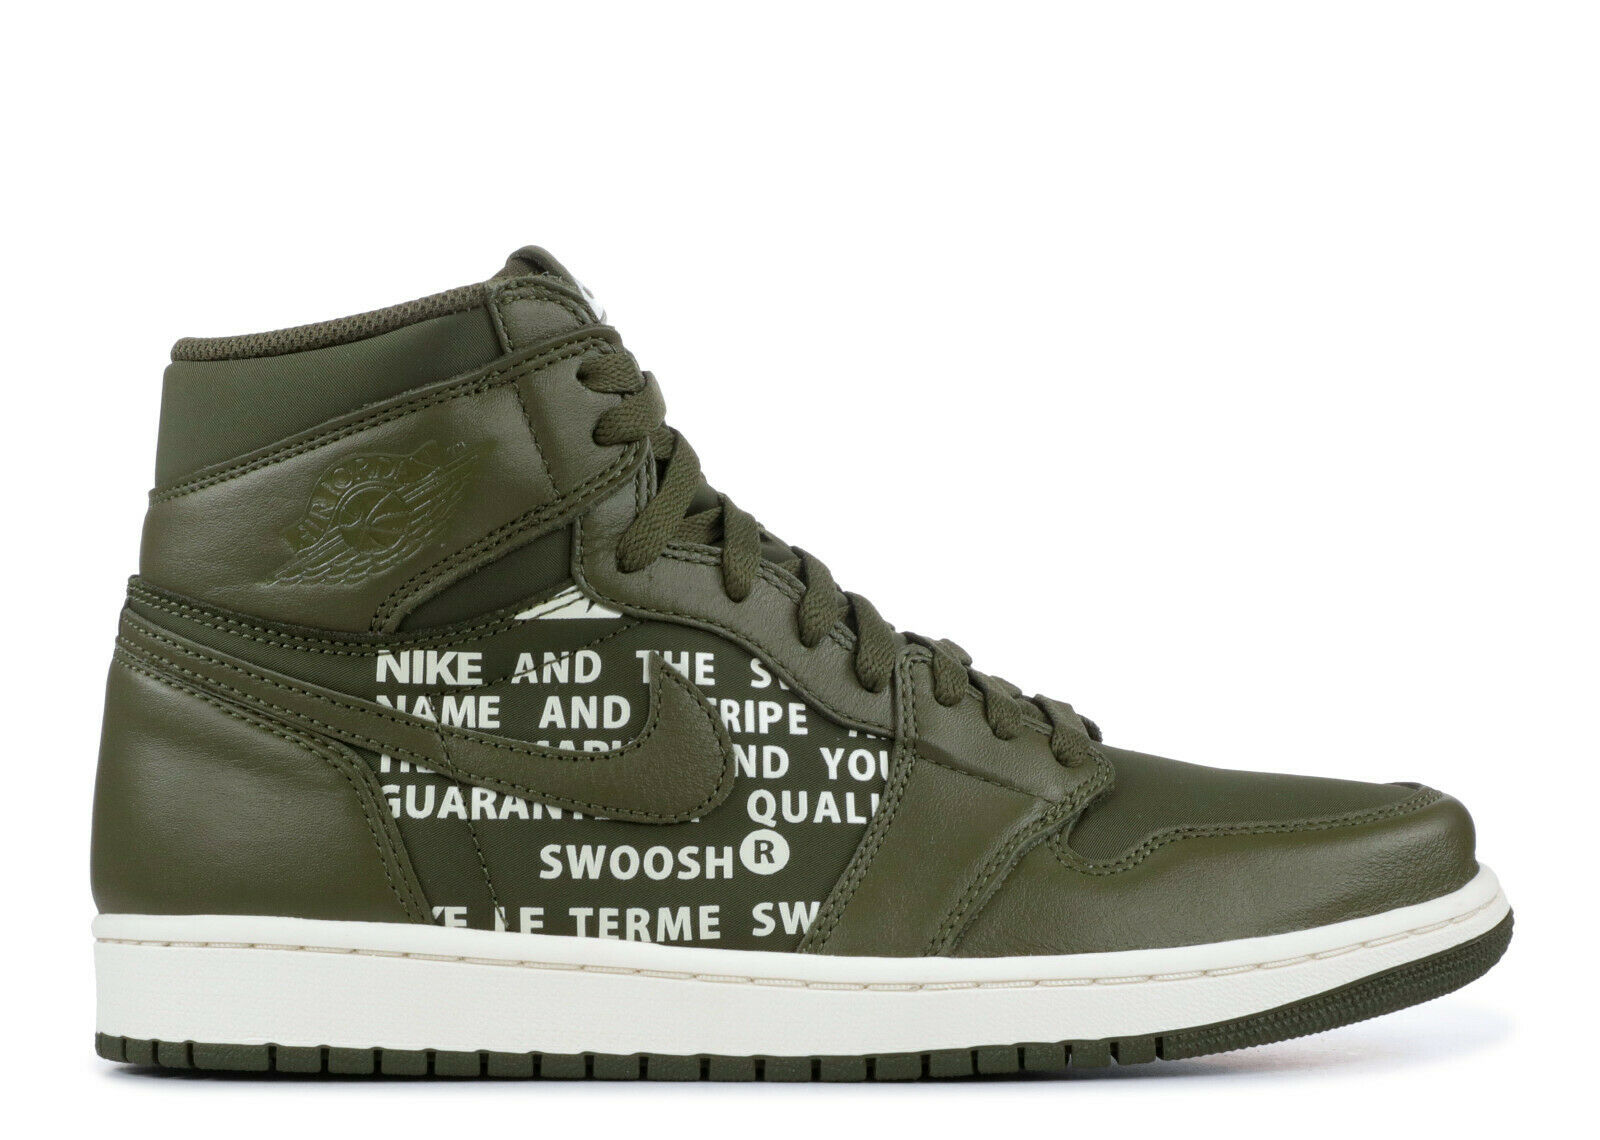 Nike Air Jordan 1 Retro High OG Olive Canvas Size 15. 555088-300